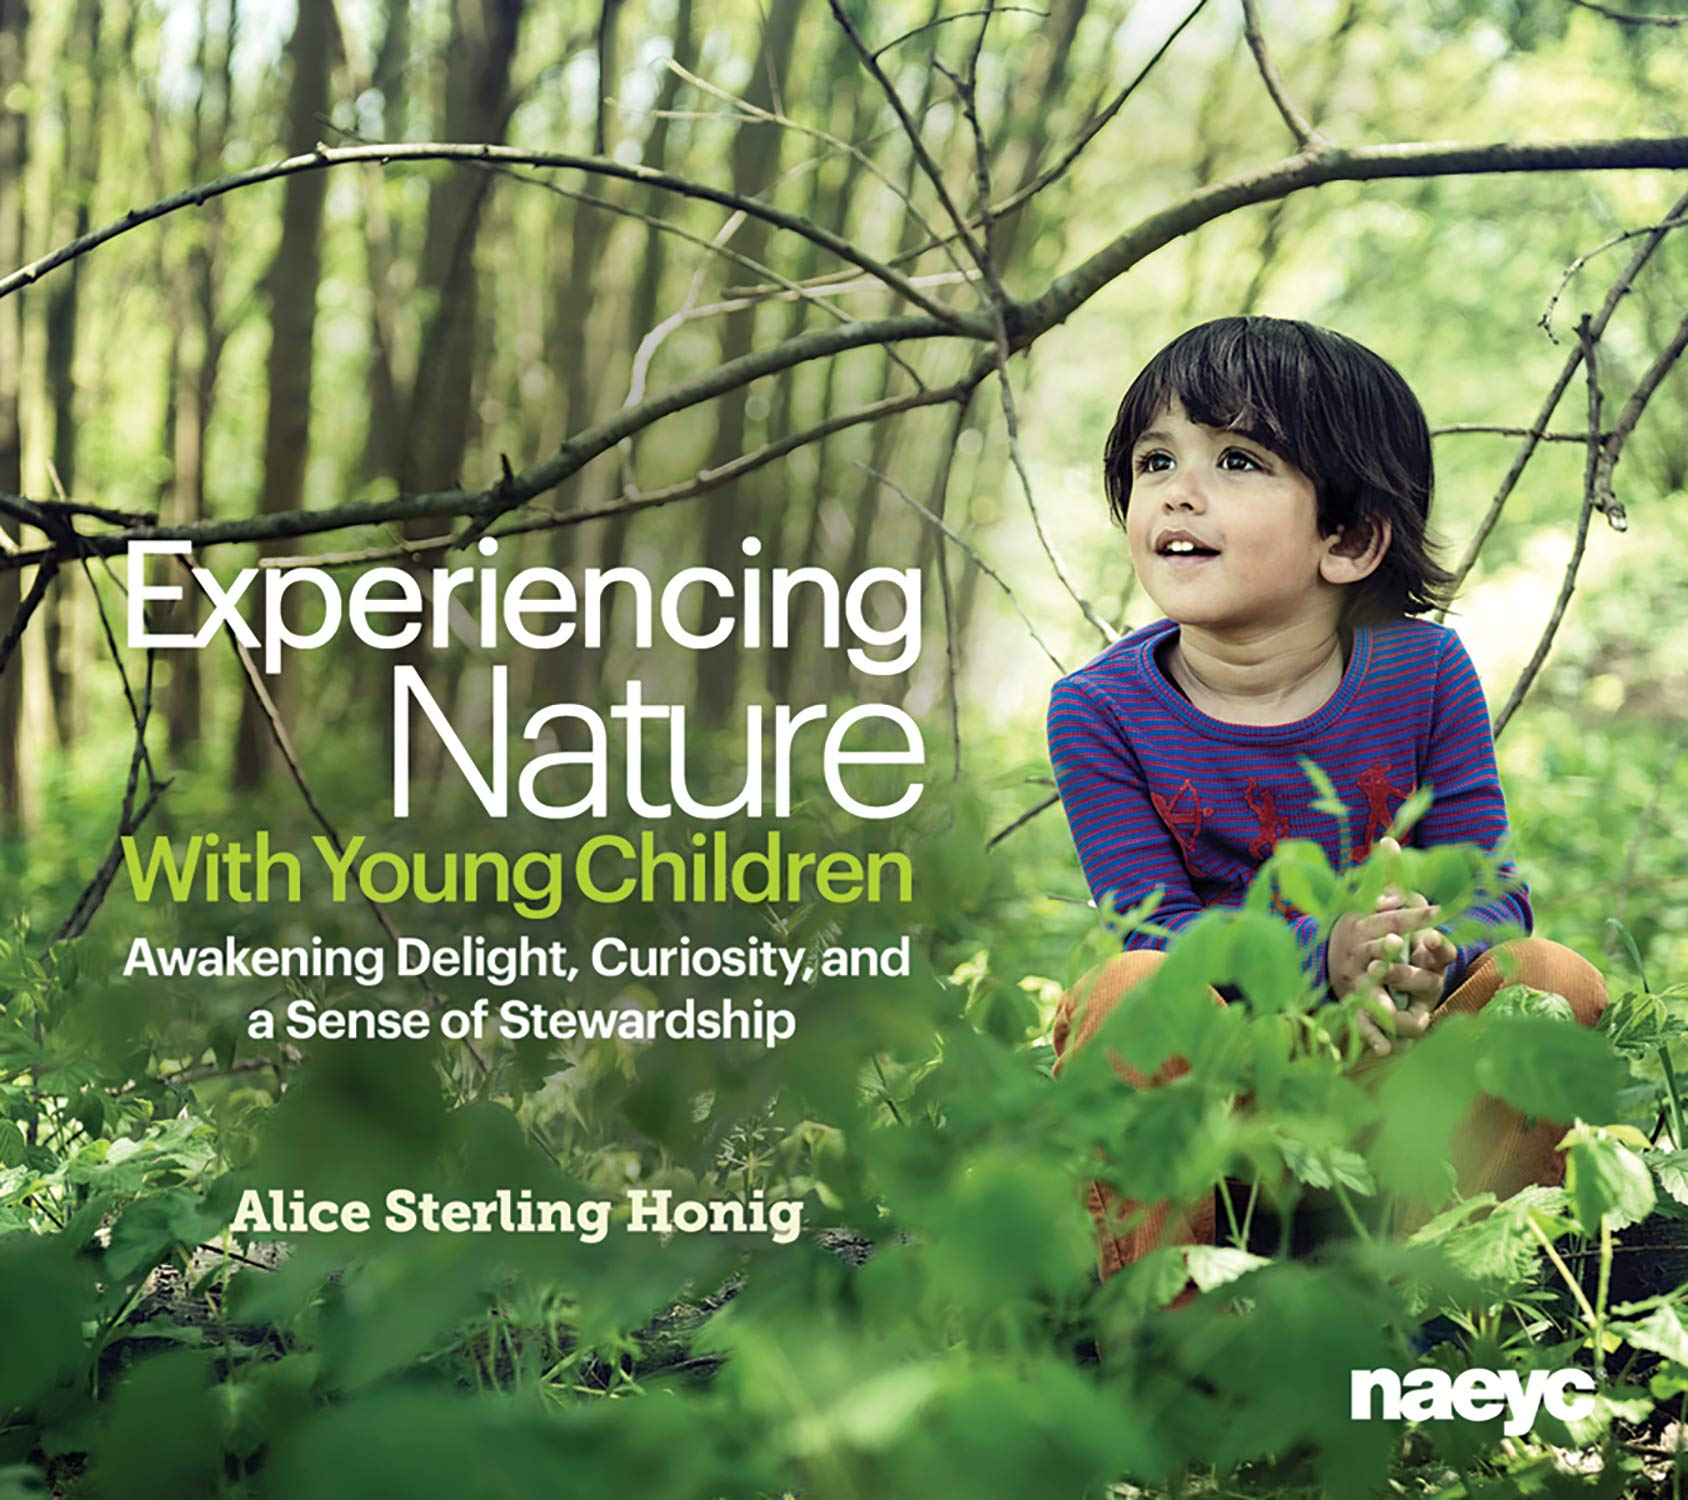 Experiencing Nature With Young Children: Awakening Delight, Curiosity, and a Sense of Stewardship pdf epub